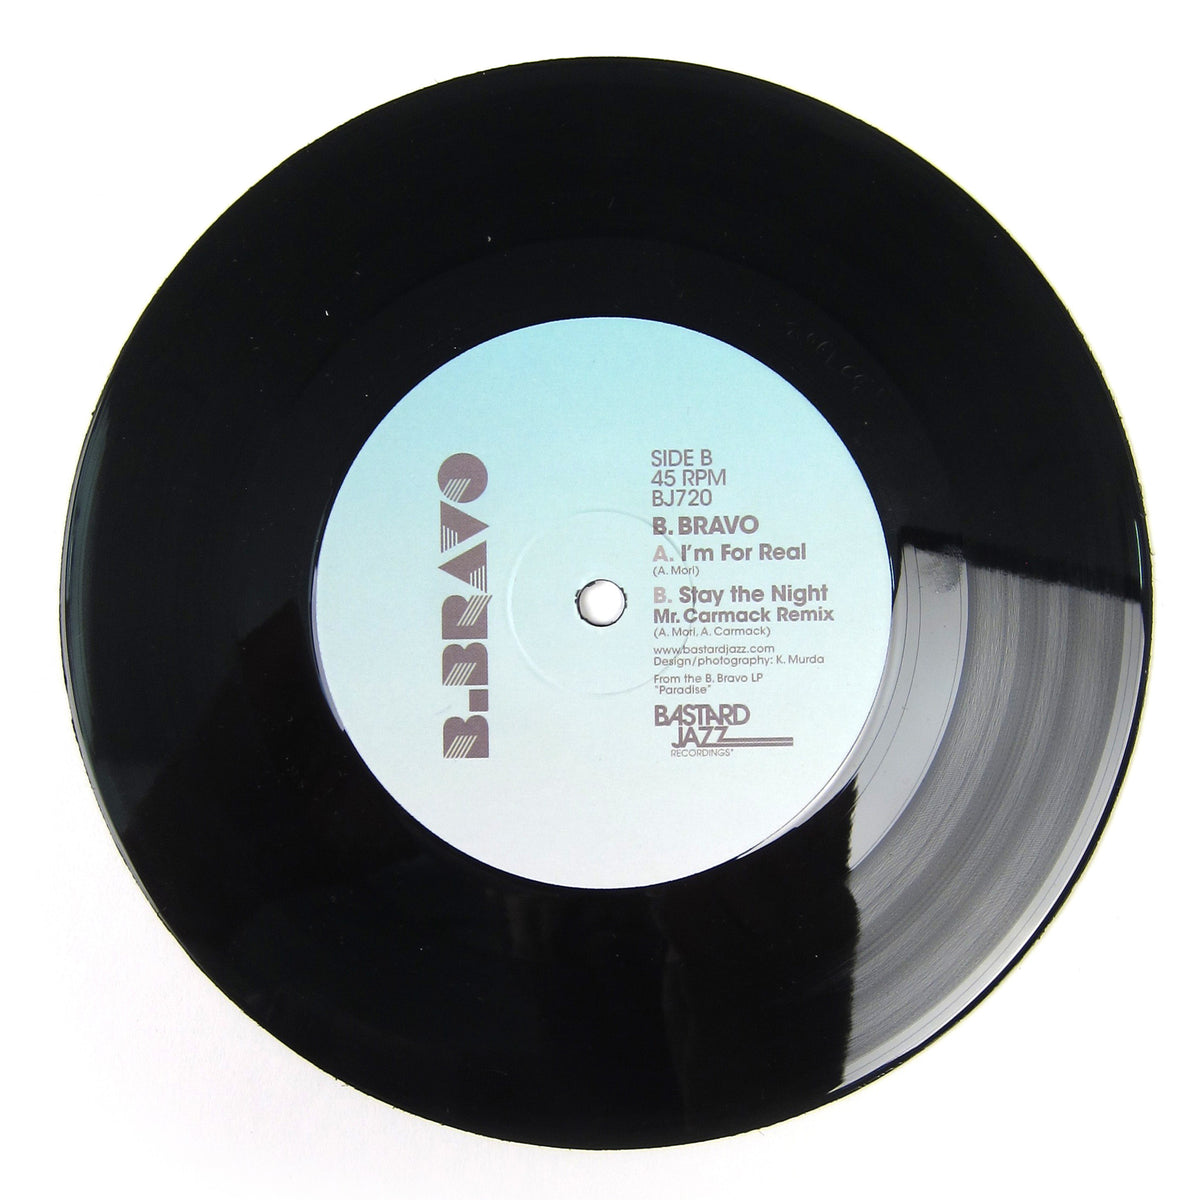 B. Bravo: I'm For Real / Stay The Night (Mr. Carmack Remix) Vinyl 7""